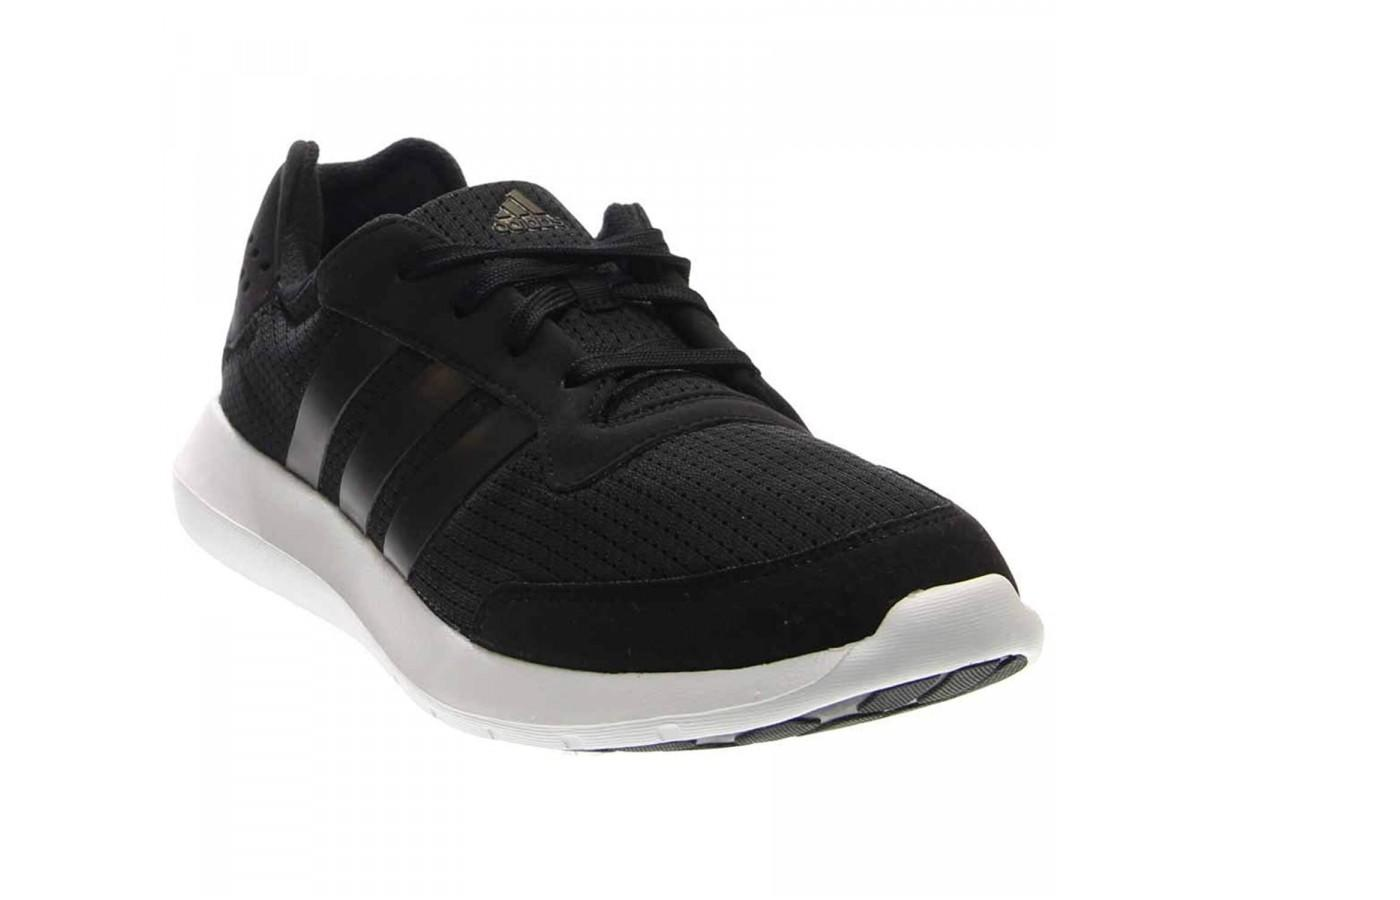 e7b08ceaa96 Adidas Element Athletic has an understated look about it ...